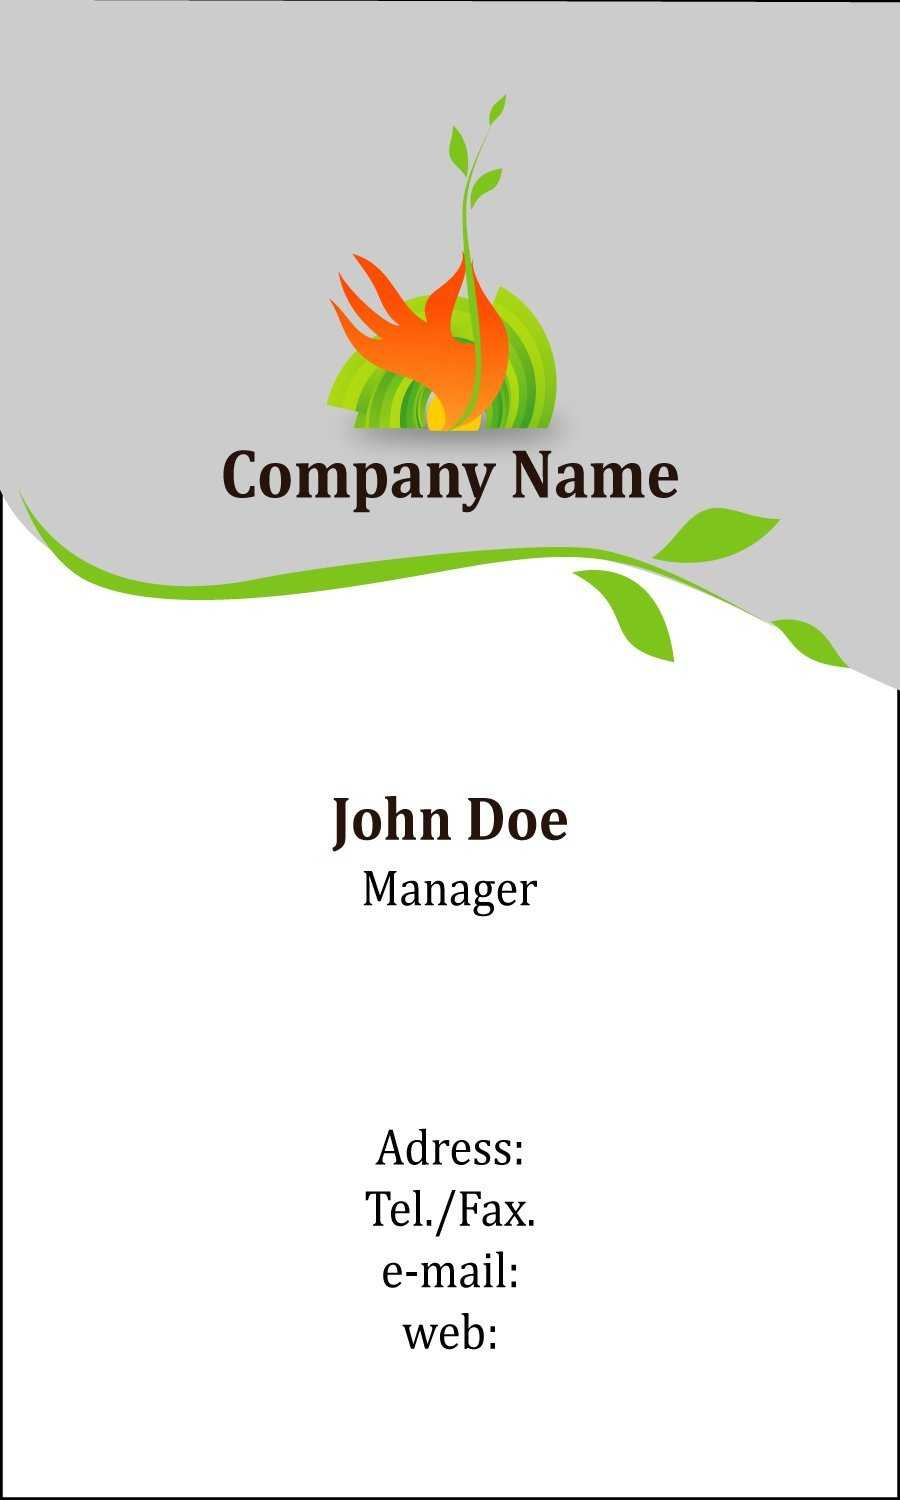 40+ Free Business Card Templates ᐅ Template Lab Regarding Blank Business Card Template Download